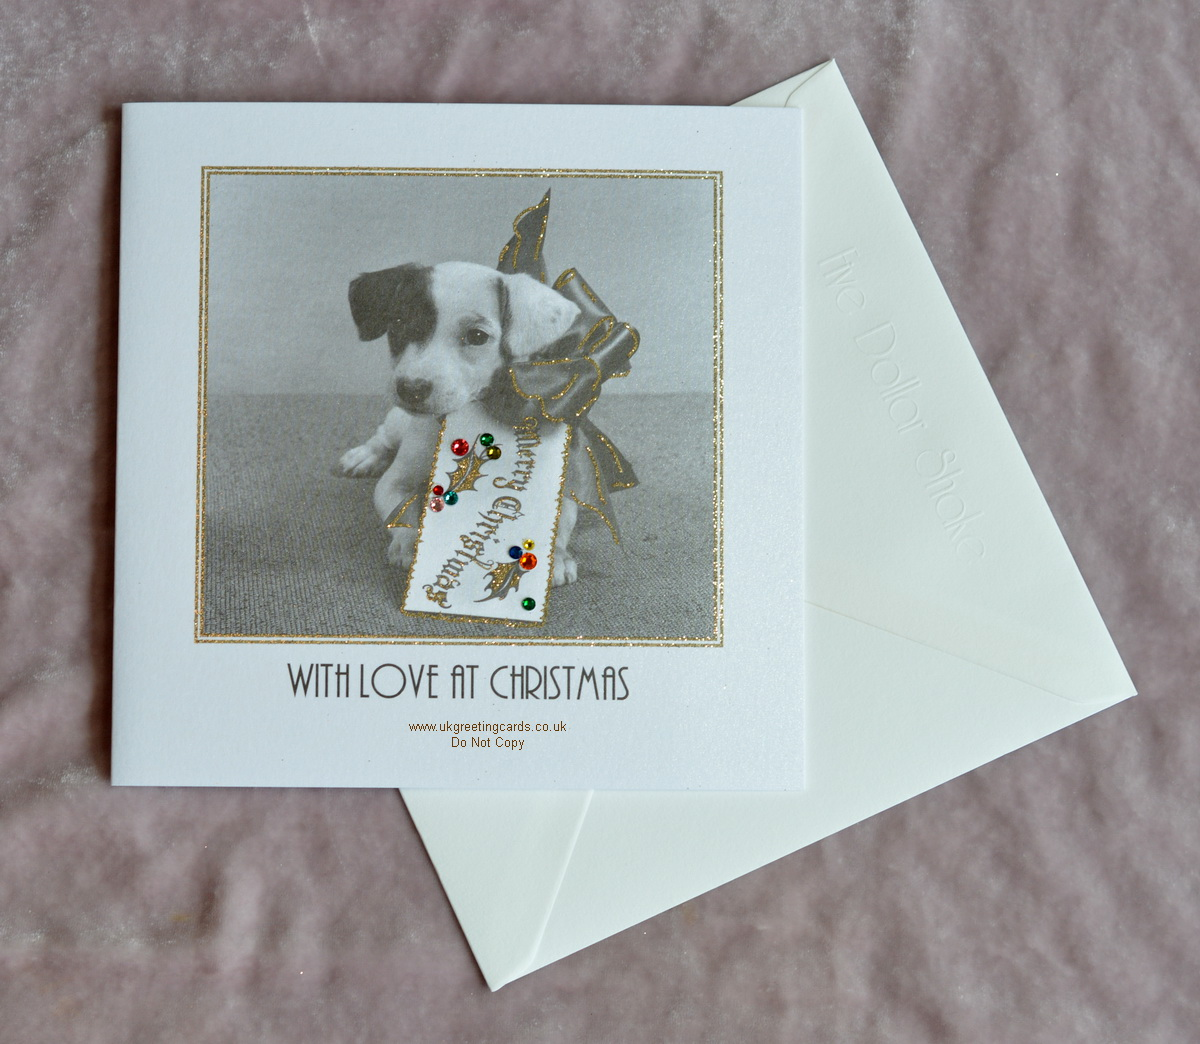 Handmade Greeting Cards Blog: Handmade Christmas Cards